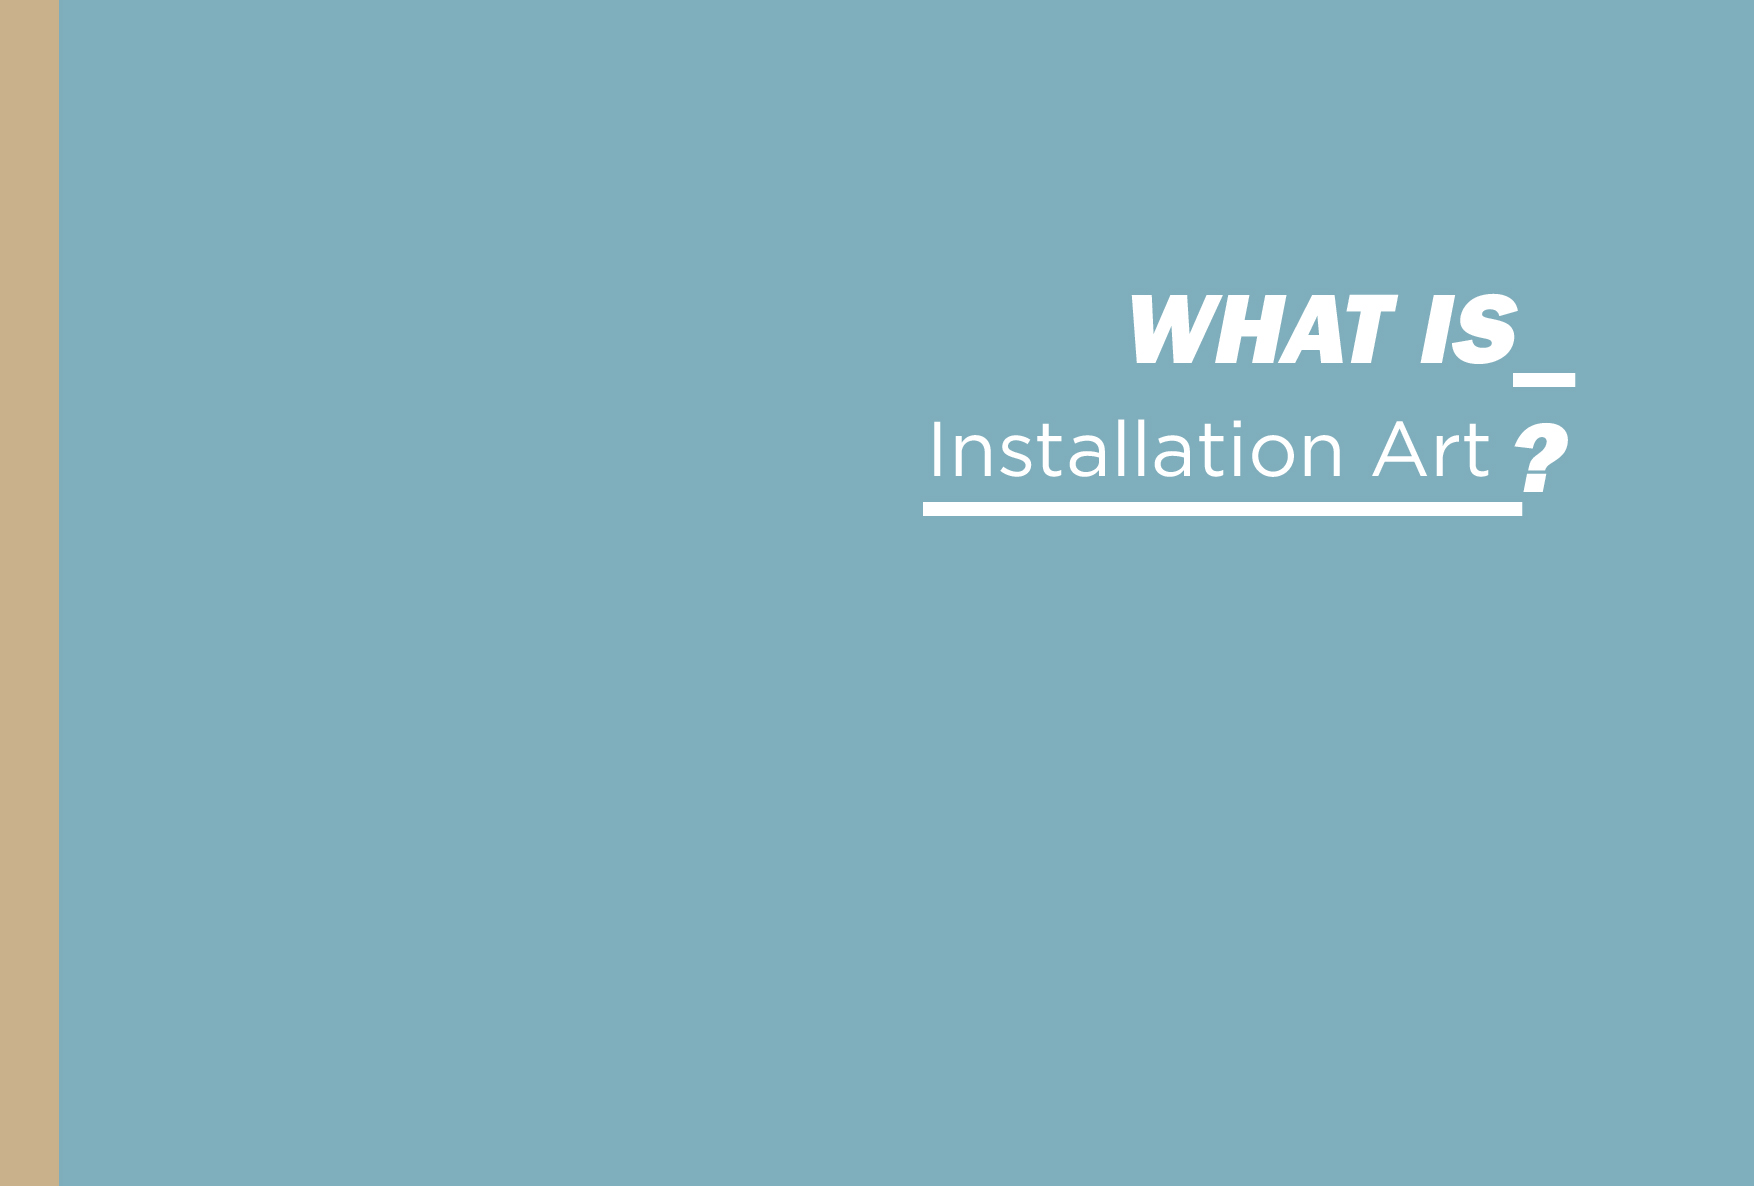 What is Installation